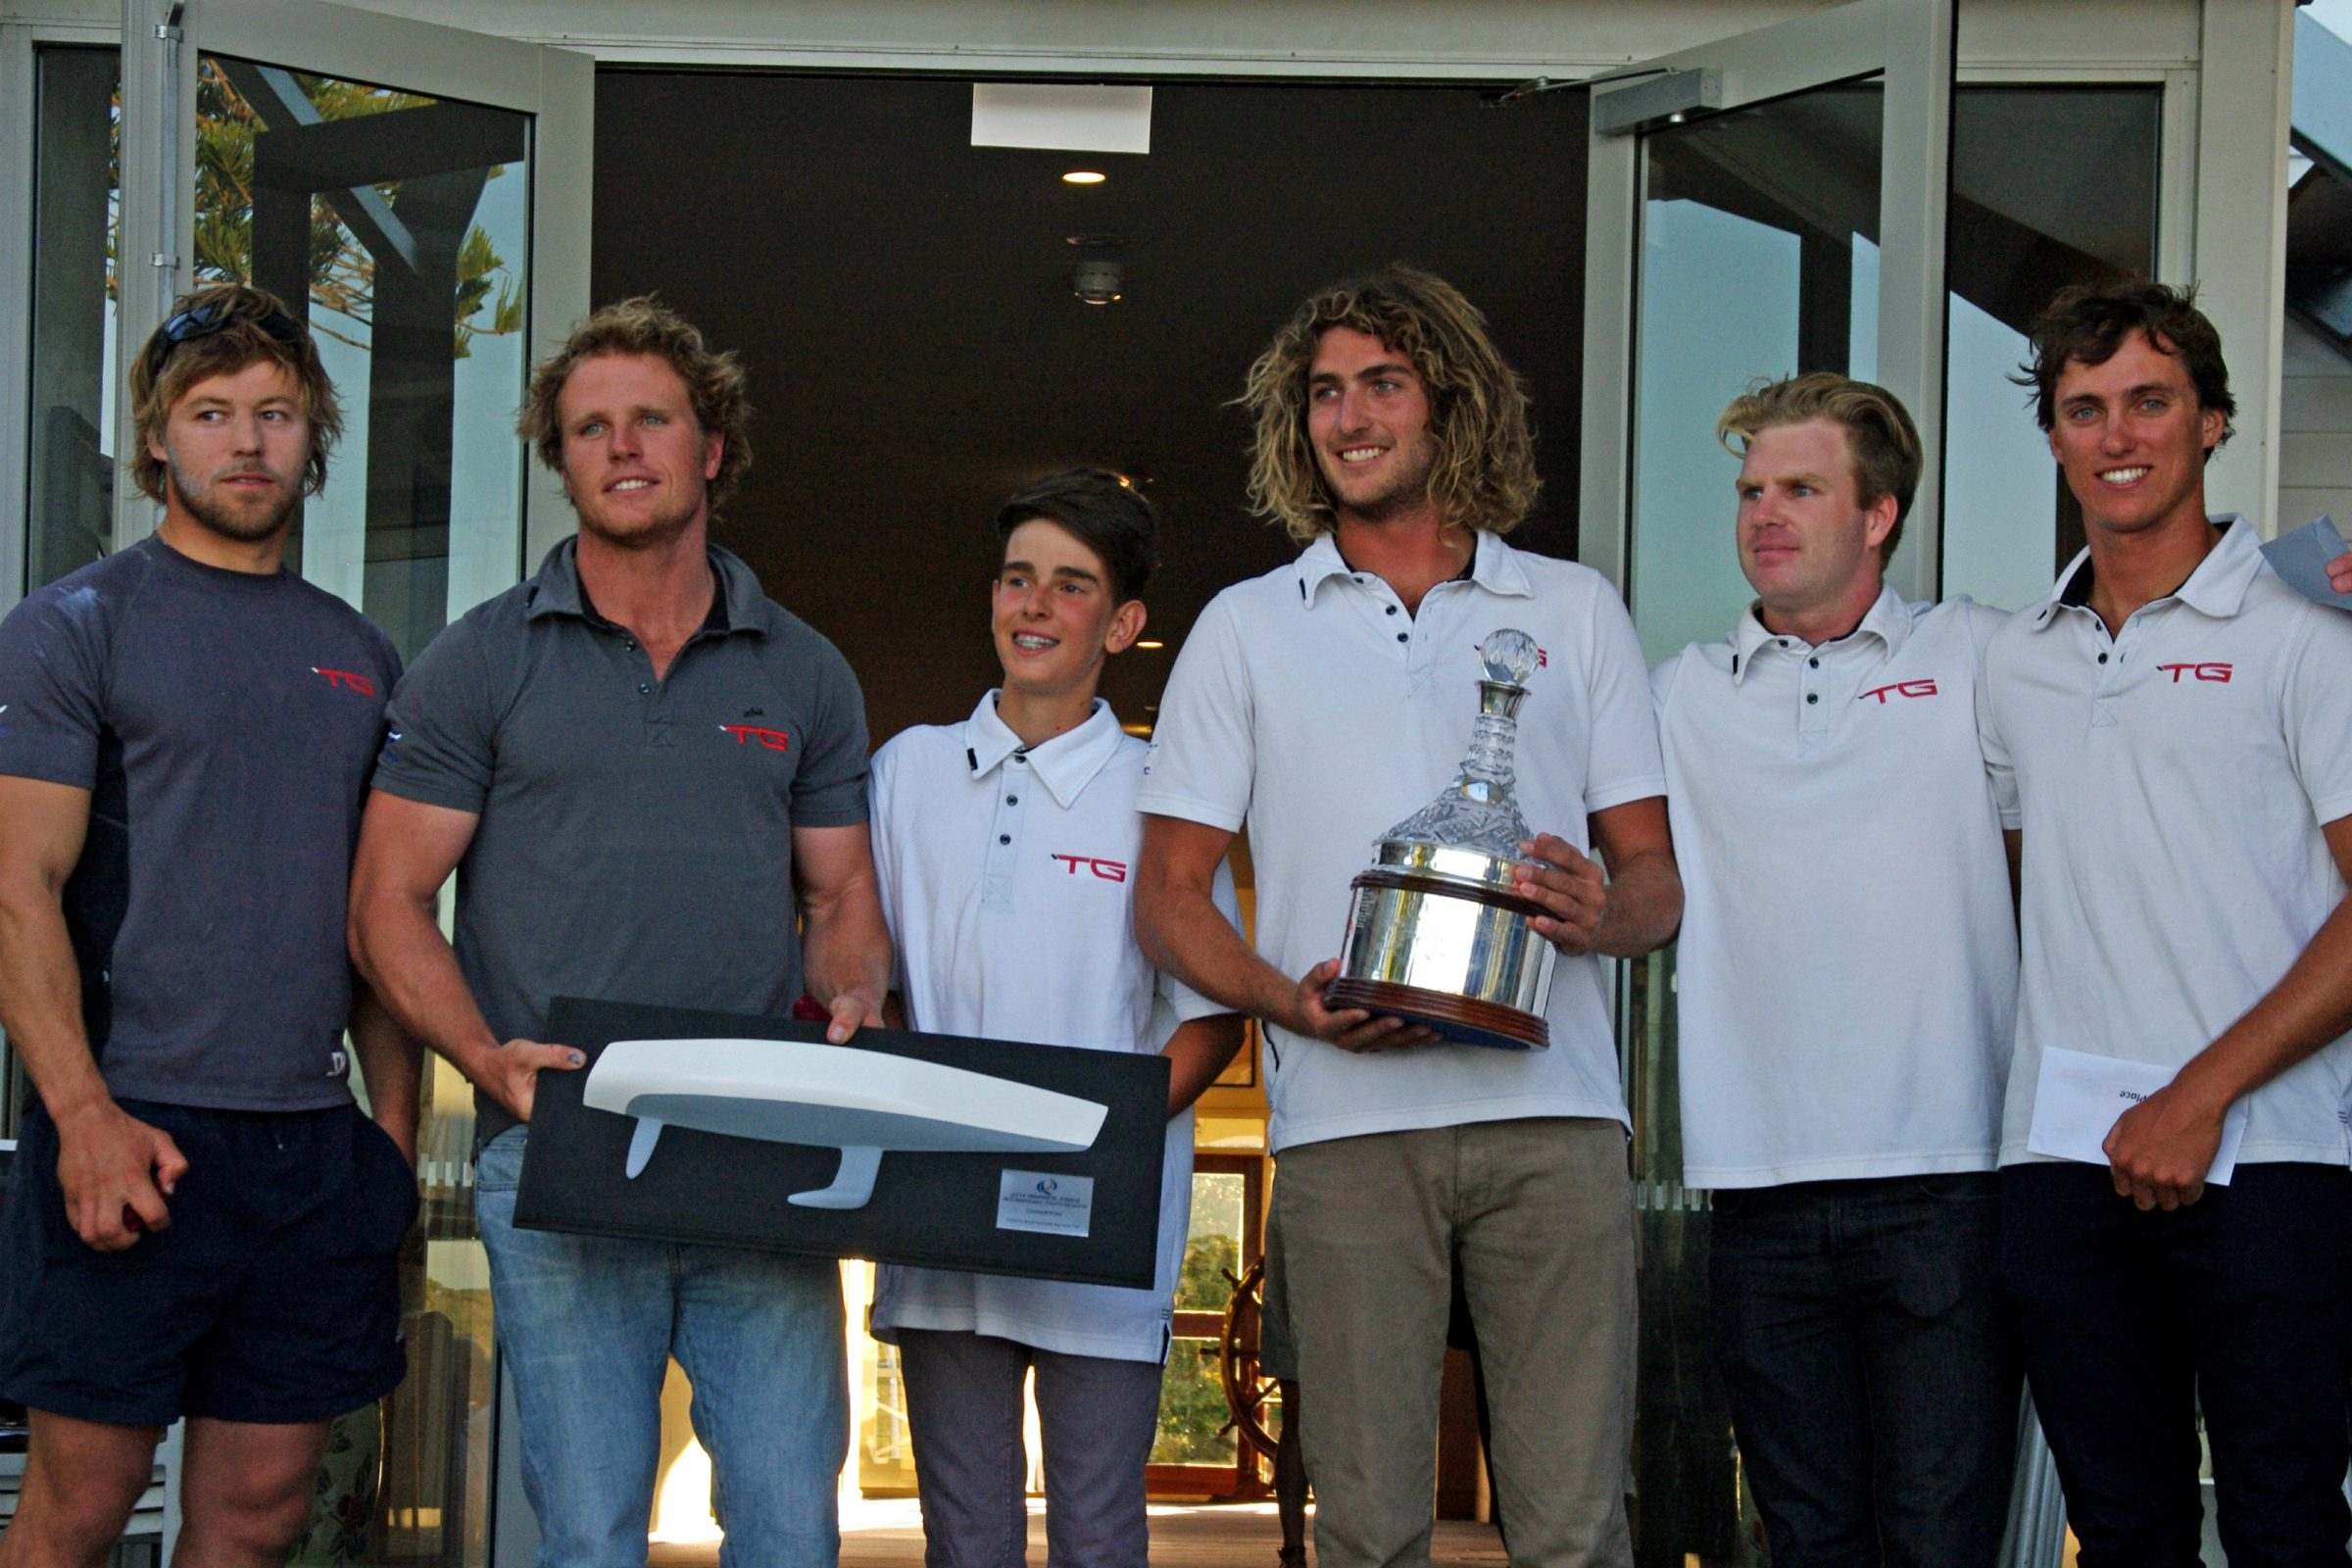 David Gilmour and crew from the royal perth yacht club , winners of the 2014 warren jones international youth regatta, organised by swan river sailing, an iconic youth match racing regatta in perth, western australia